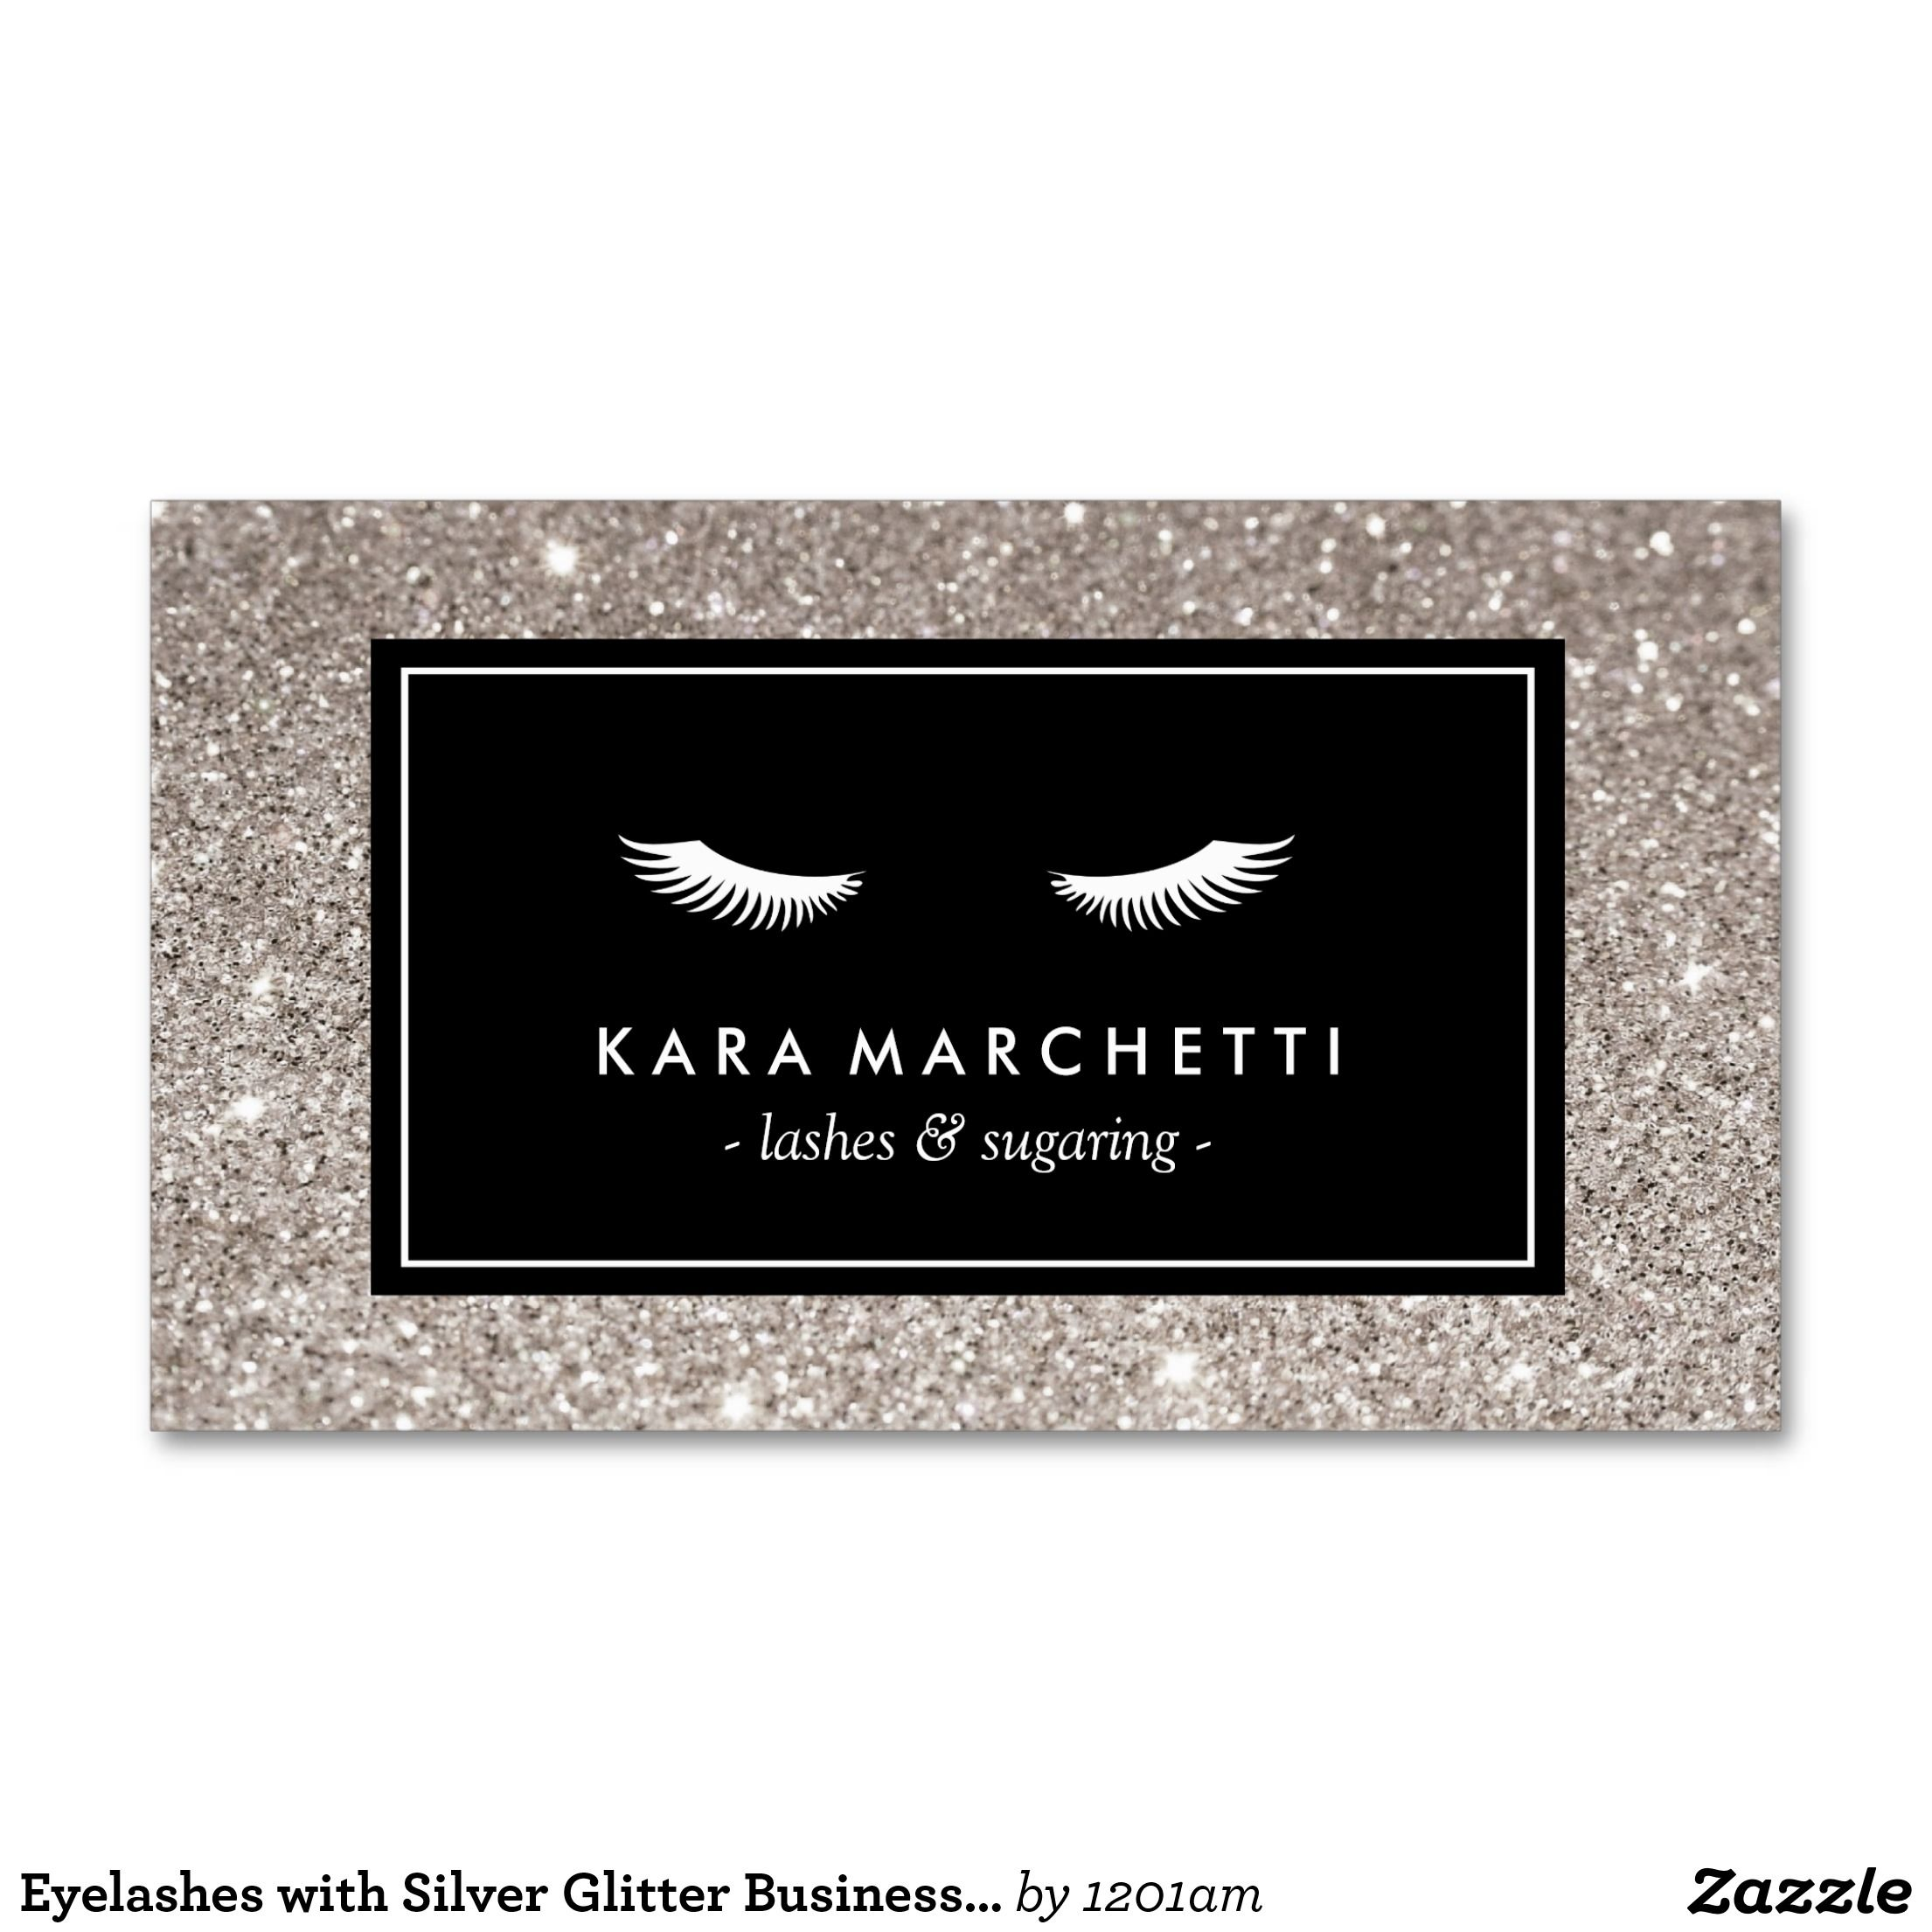 Eyelashes with Silver Glitter Business Card | Silver glitter and ...